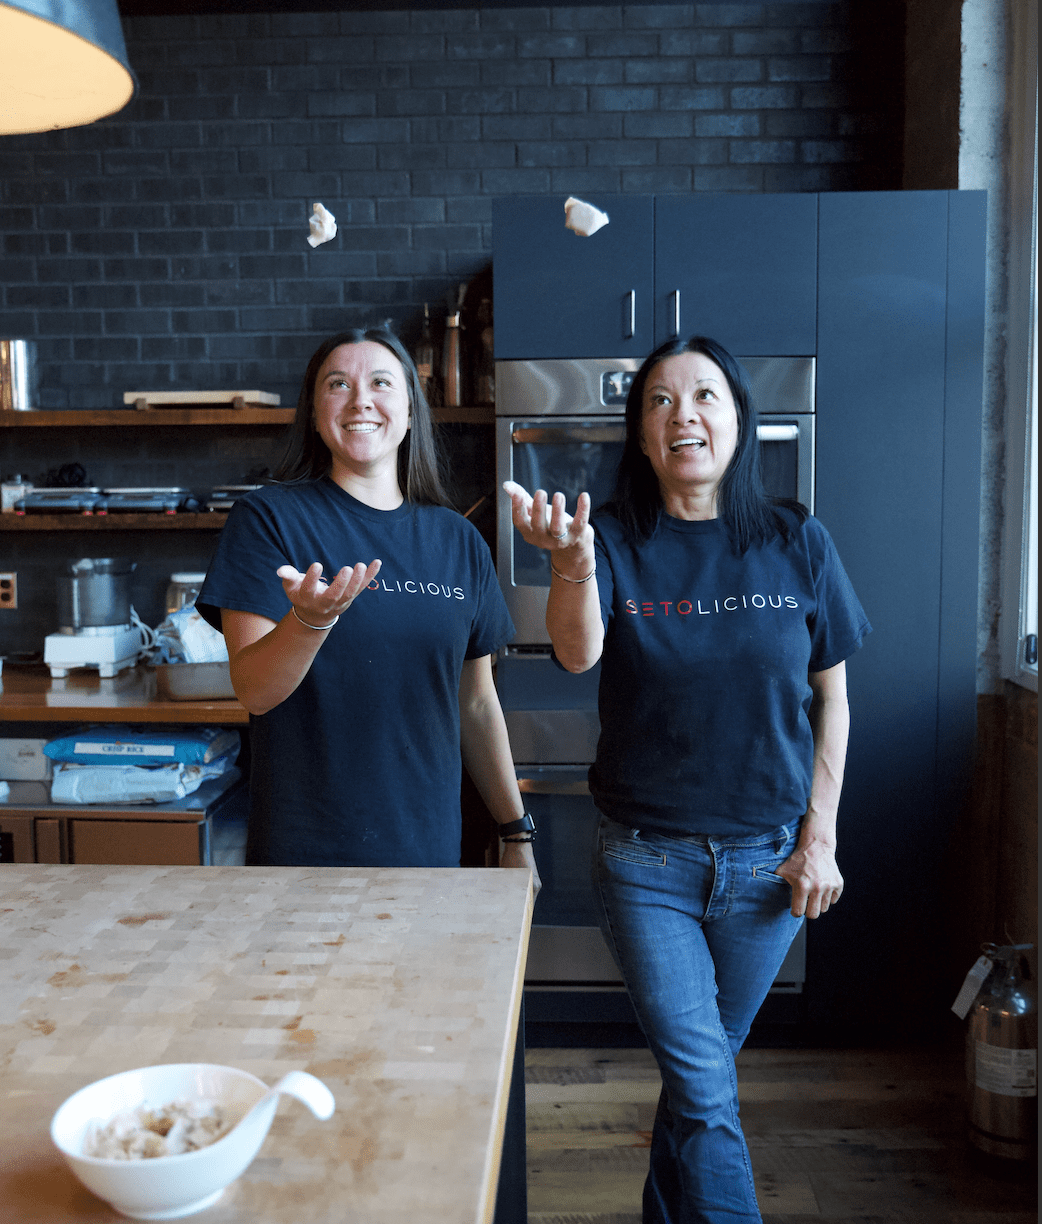 Mother Daughter Duo's Good Fortune Comes From The Pandemic with Seto-licous